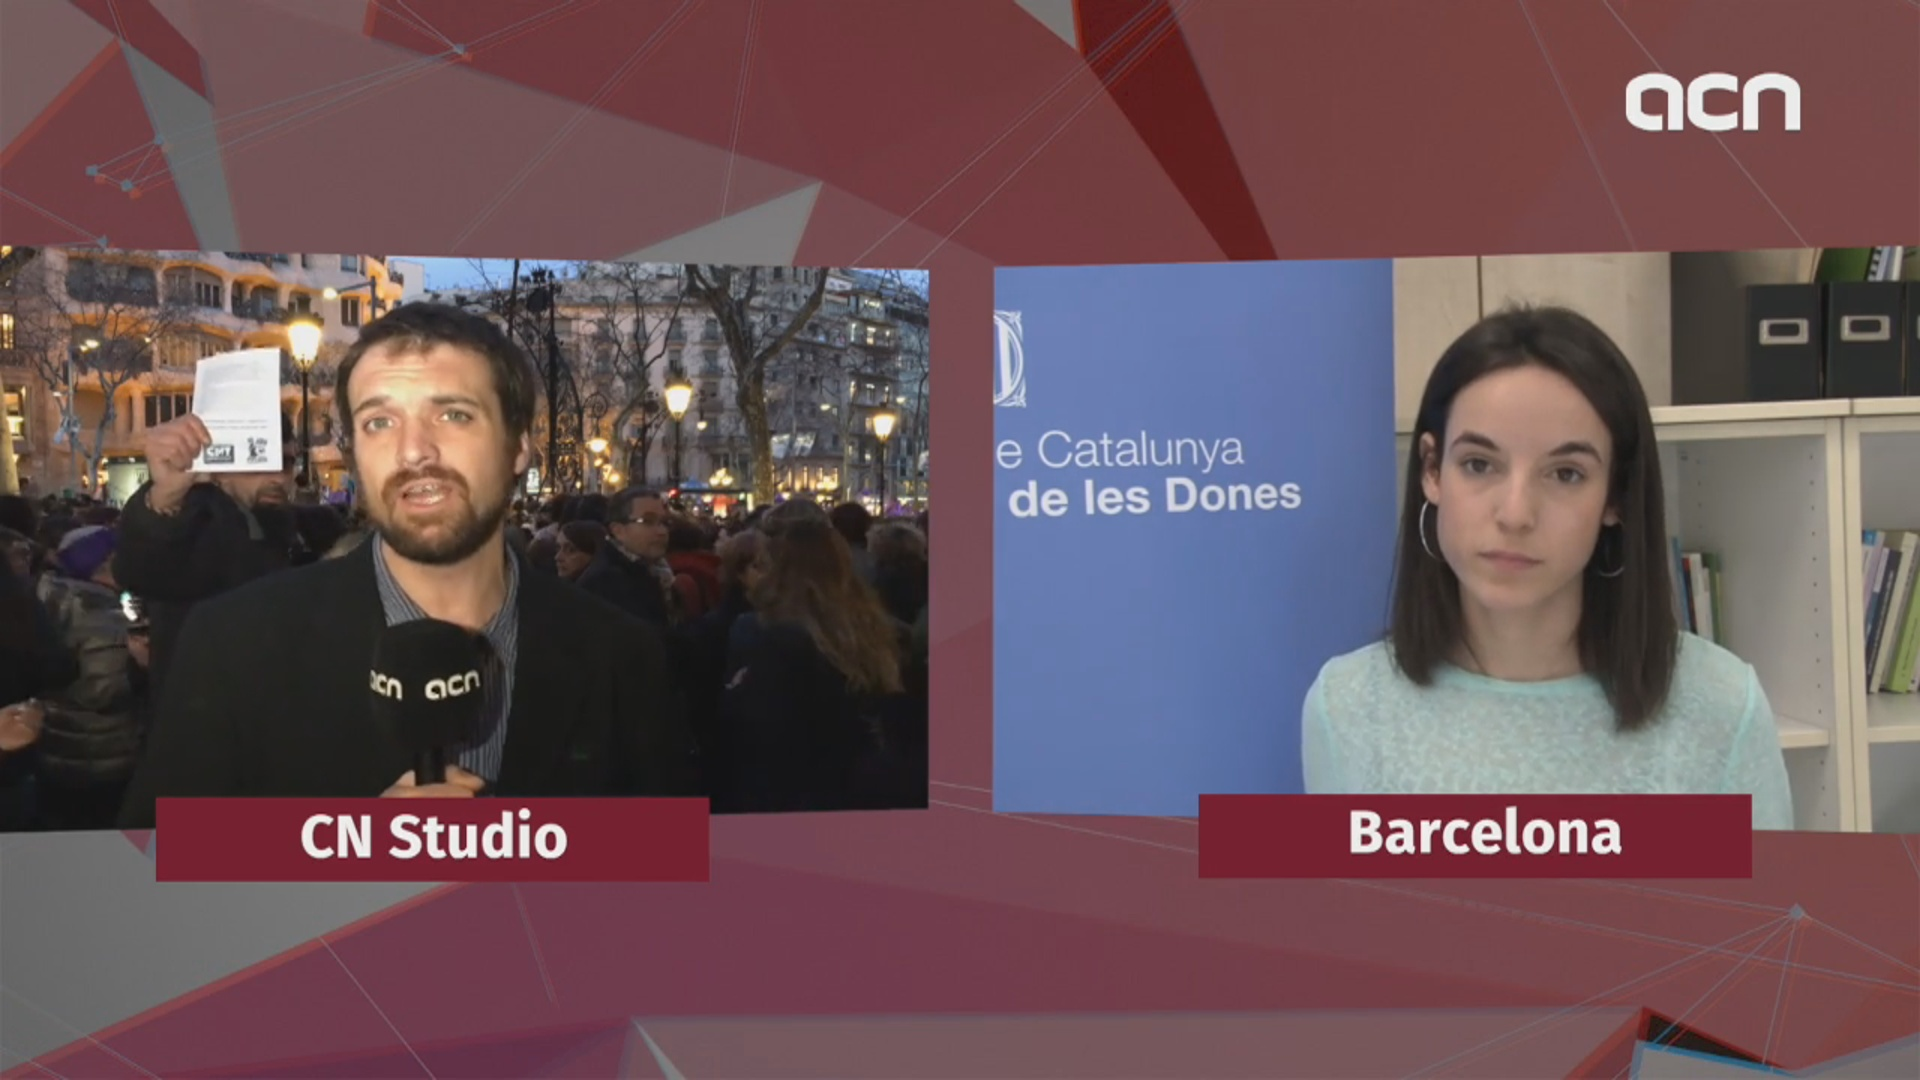 Catalan News interviews Núria Ramon, executive director of the Catalan Women's Institute